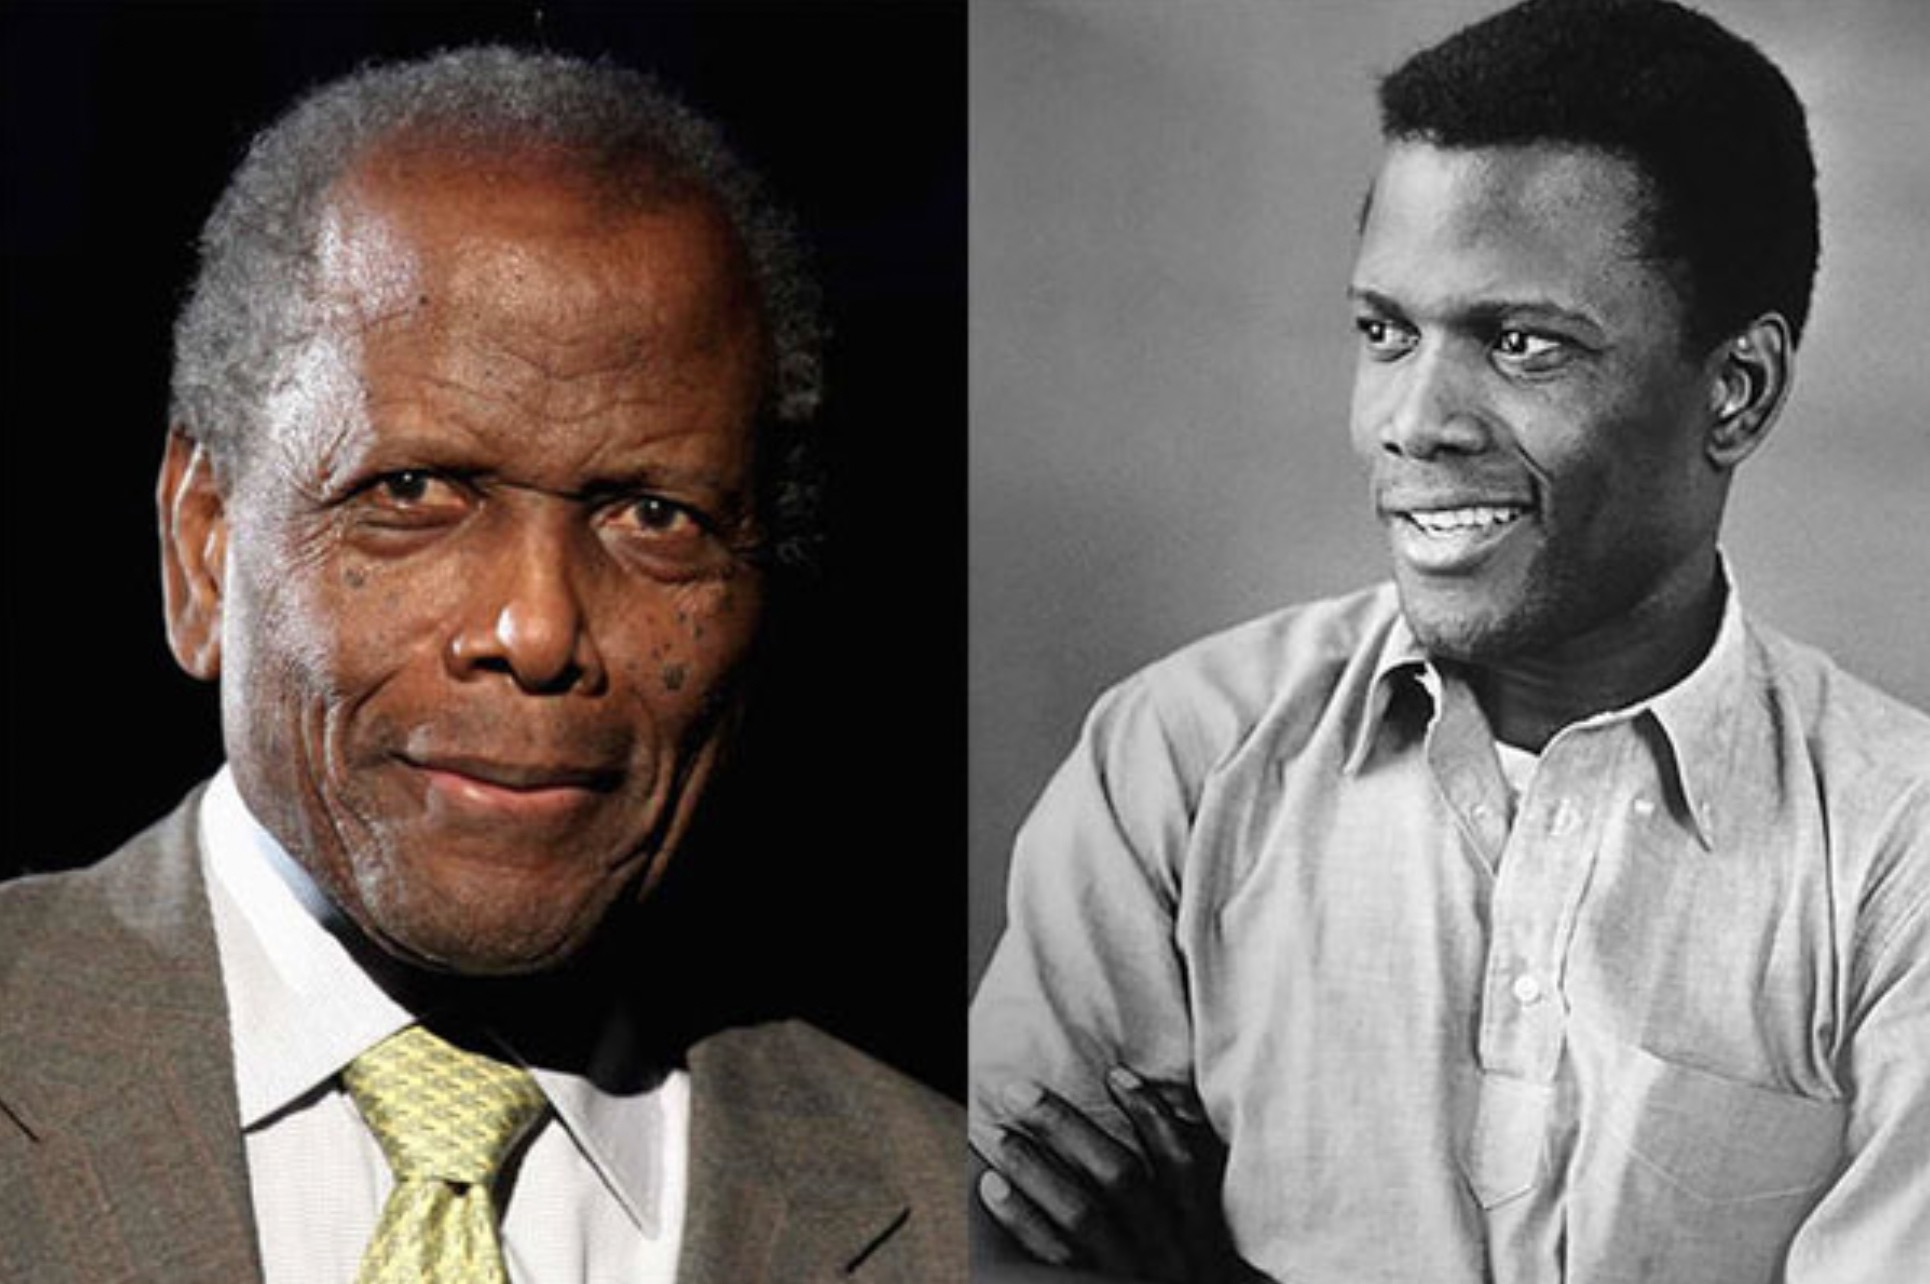 SIDNEY POITIER 91 YEARS OLD